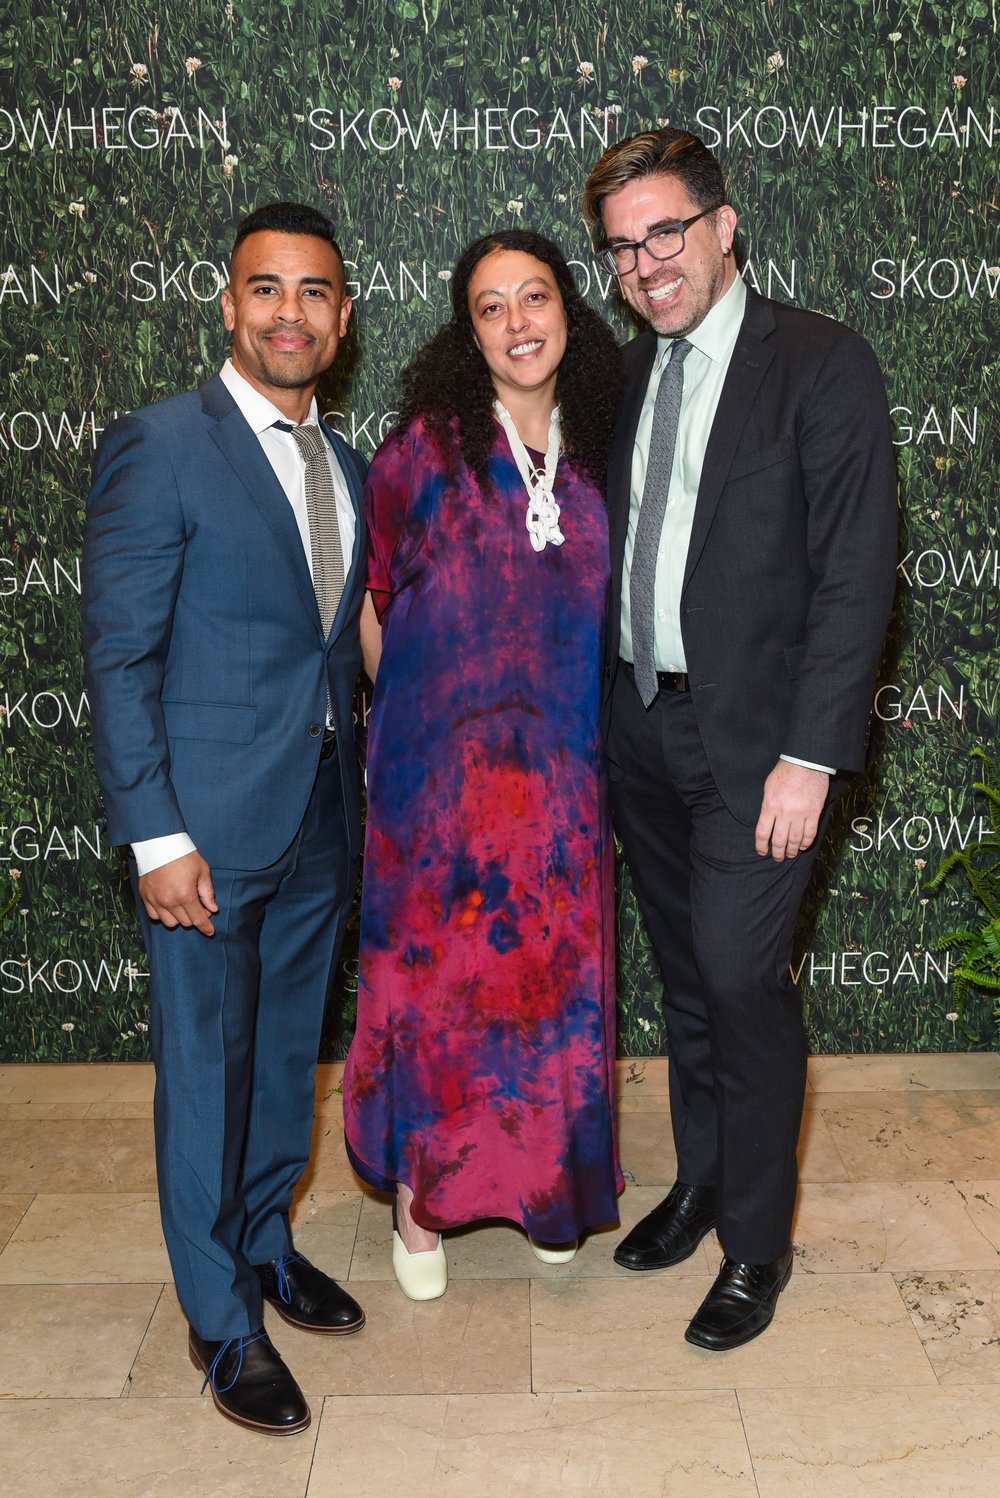 Shaun Leonardo, Sarah Workneh, Jamie Bennett==